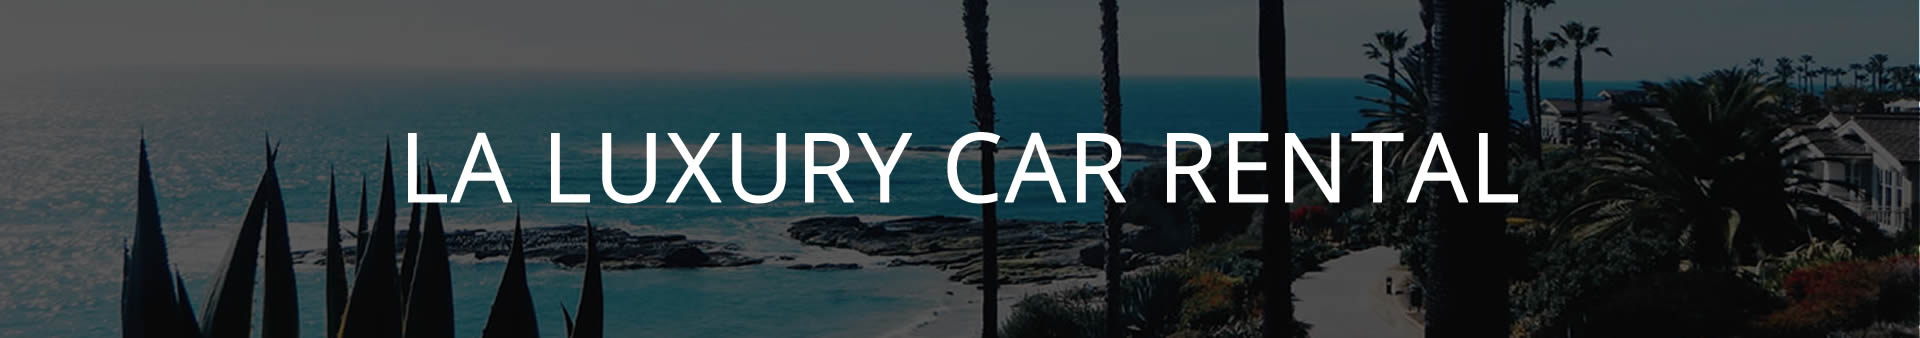 luxury car rental los angeles specials